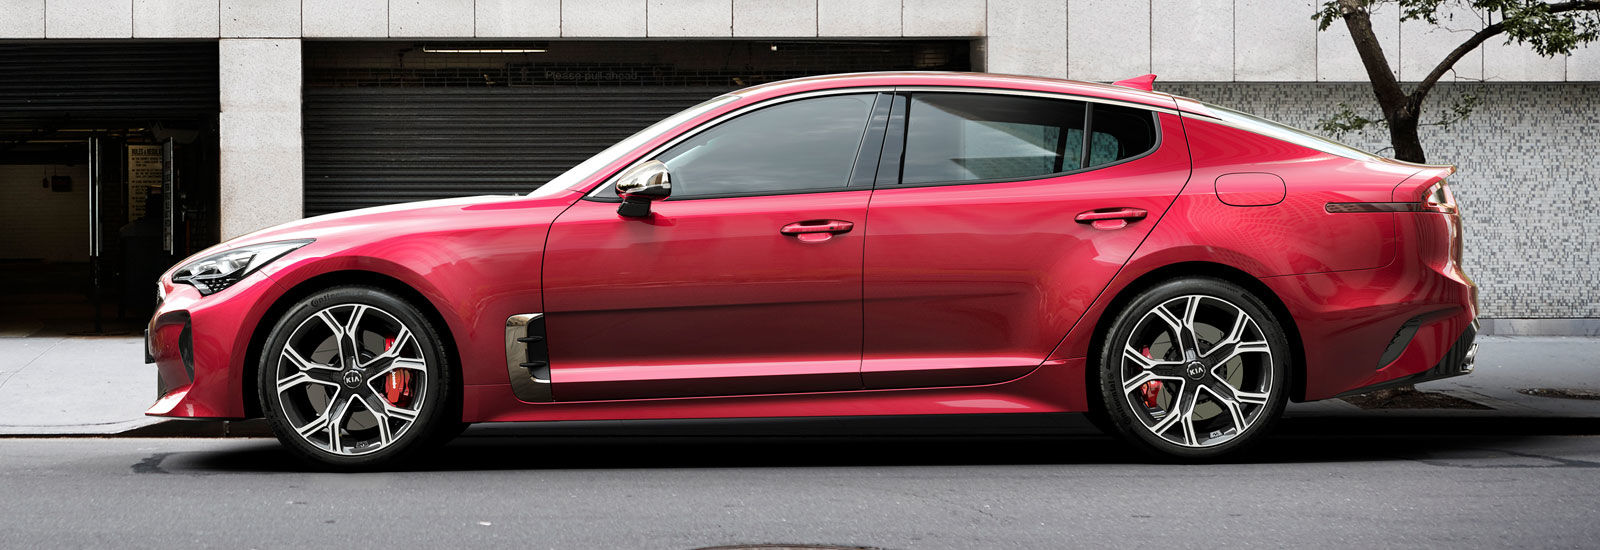 2018 kia gt. unique 2018 red kia stinger gt side profile shot in 2018 kia gt